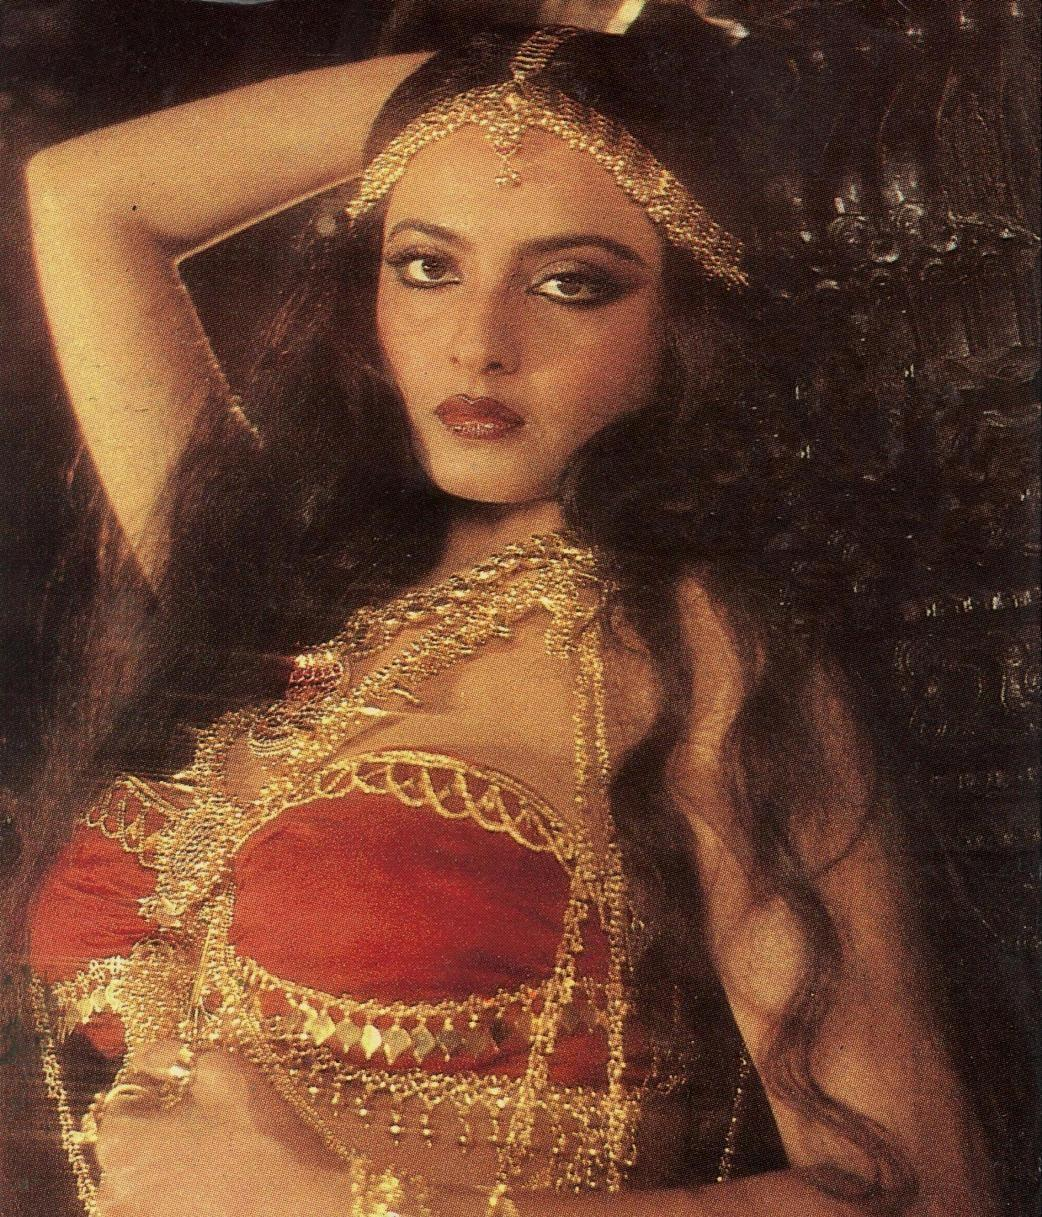 Impossible the Nude image of rekha